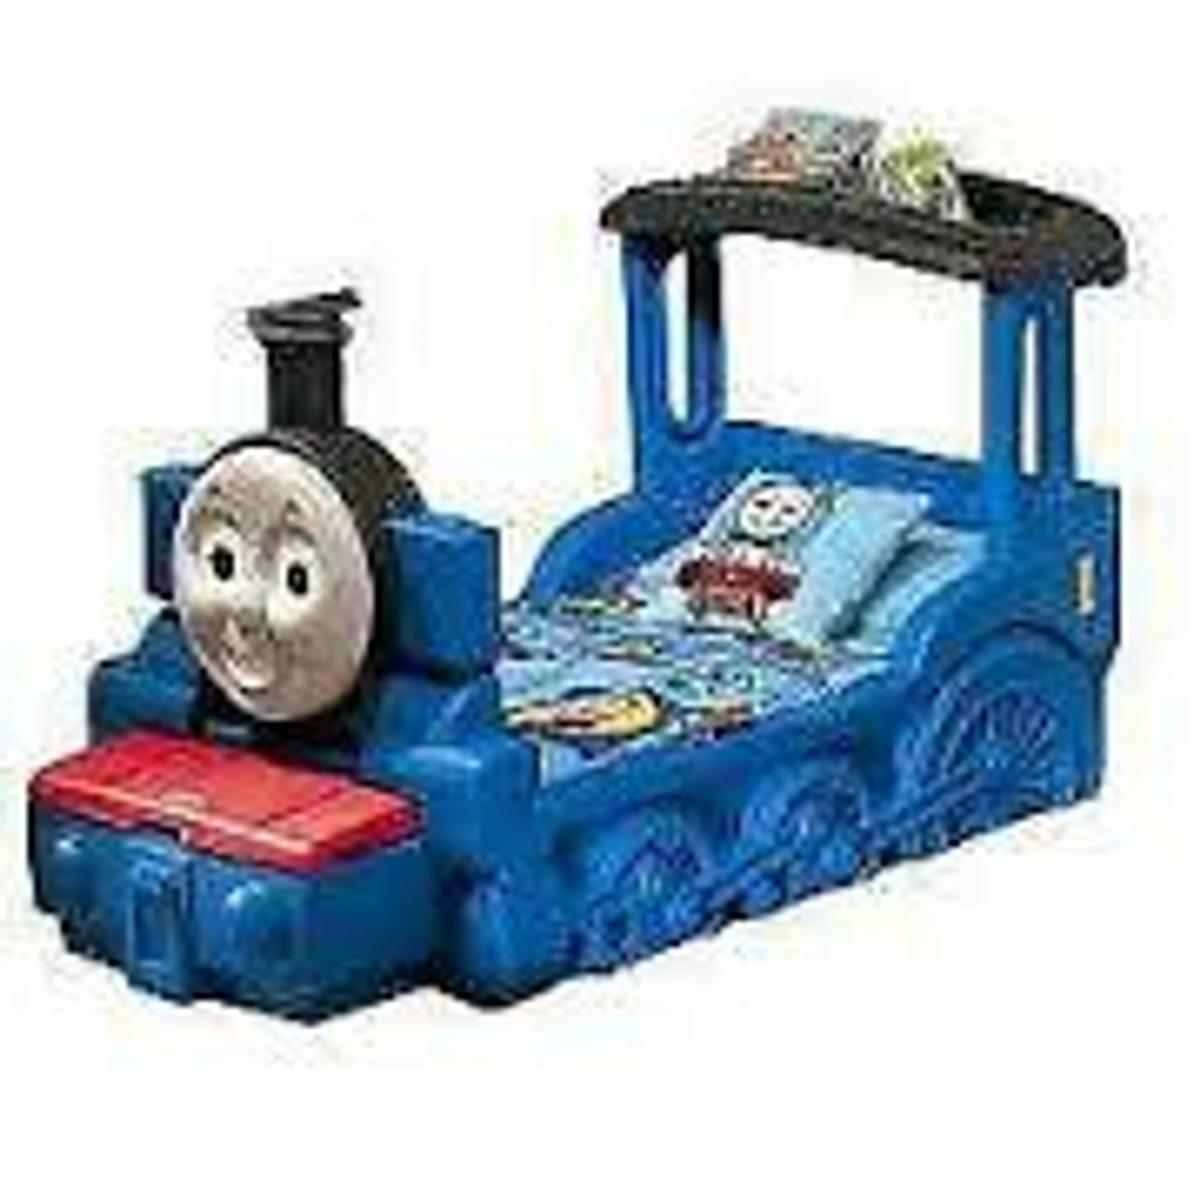 Thomas The Tank Engine Bed In Np19 Newport For 100 00 For Sale Shpock